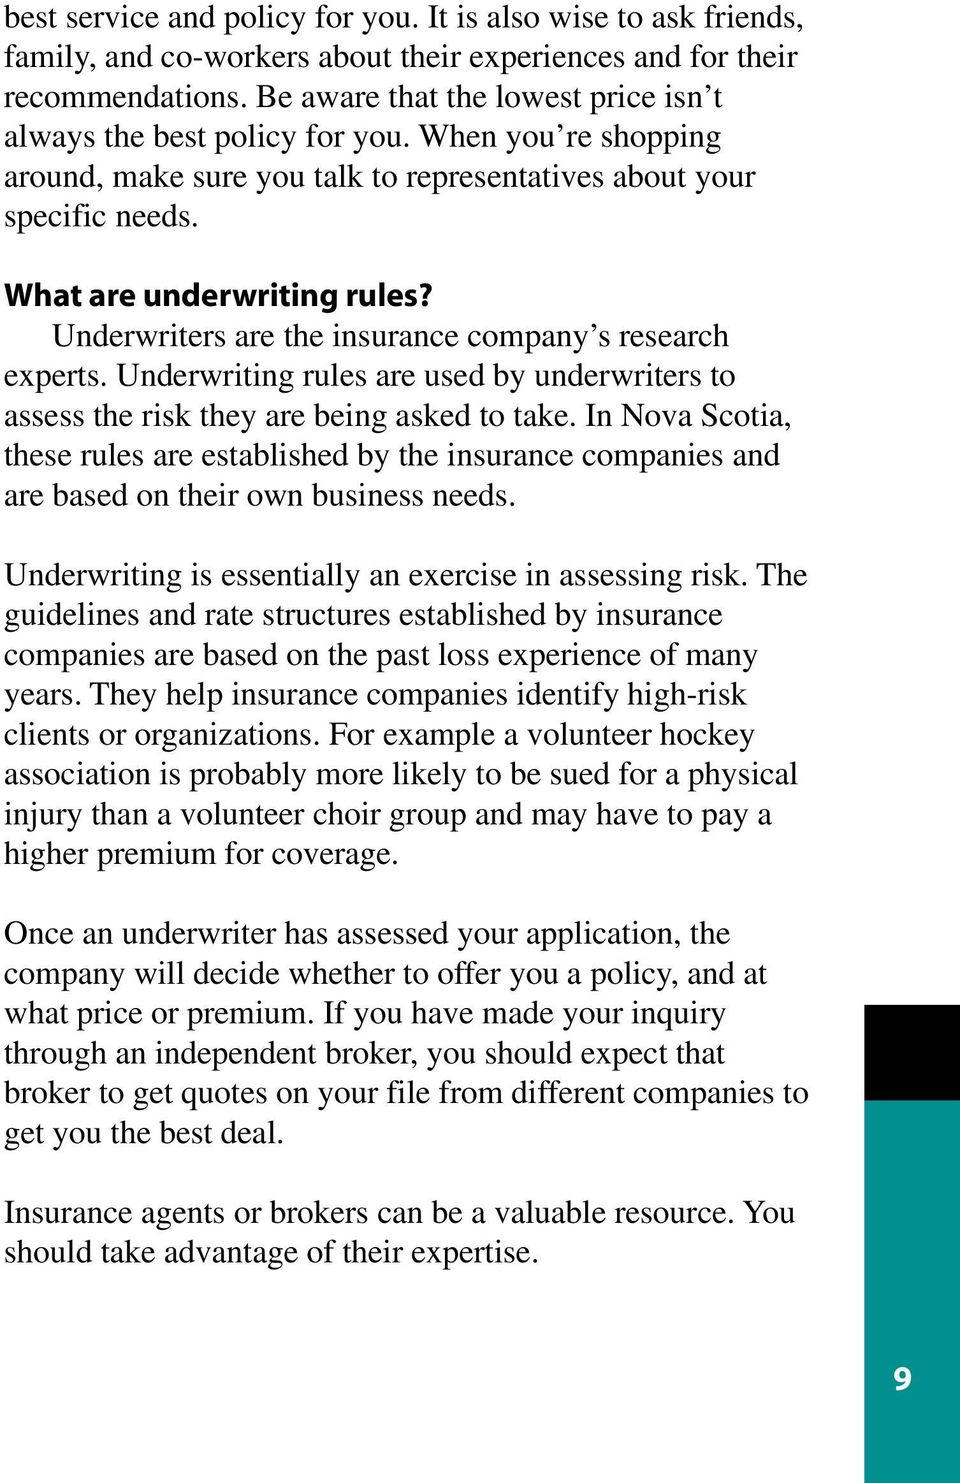 Underwriters are the insurance company s research experts. Underwriting rules are used by underwriters to assess the risk they are being asked to take.